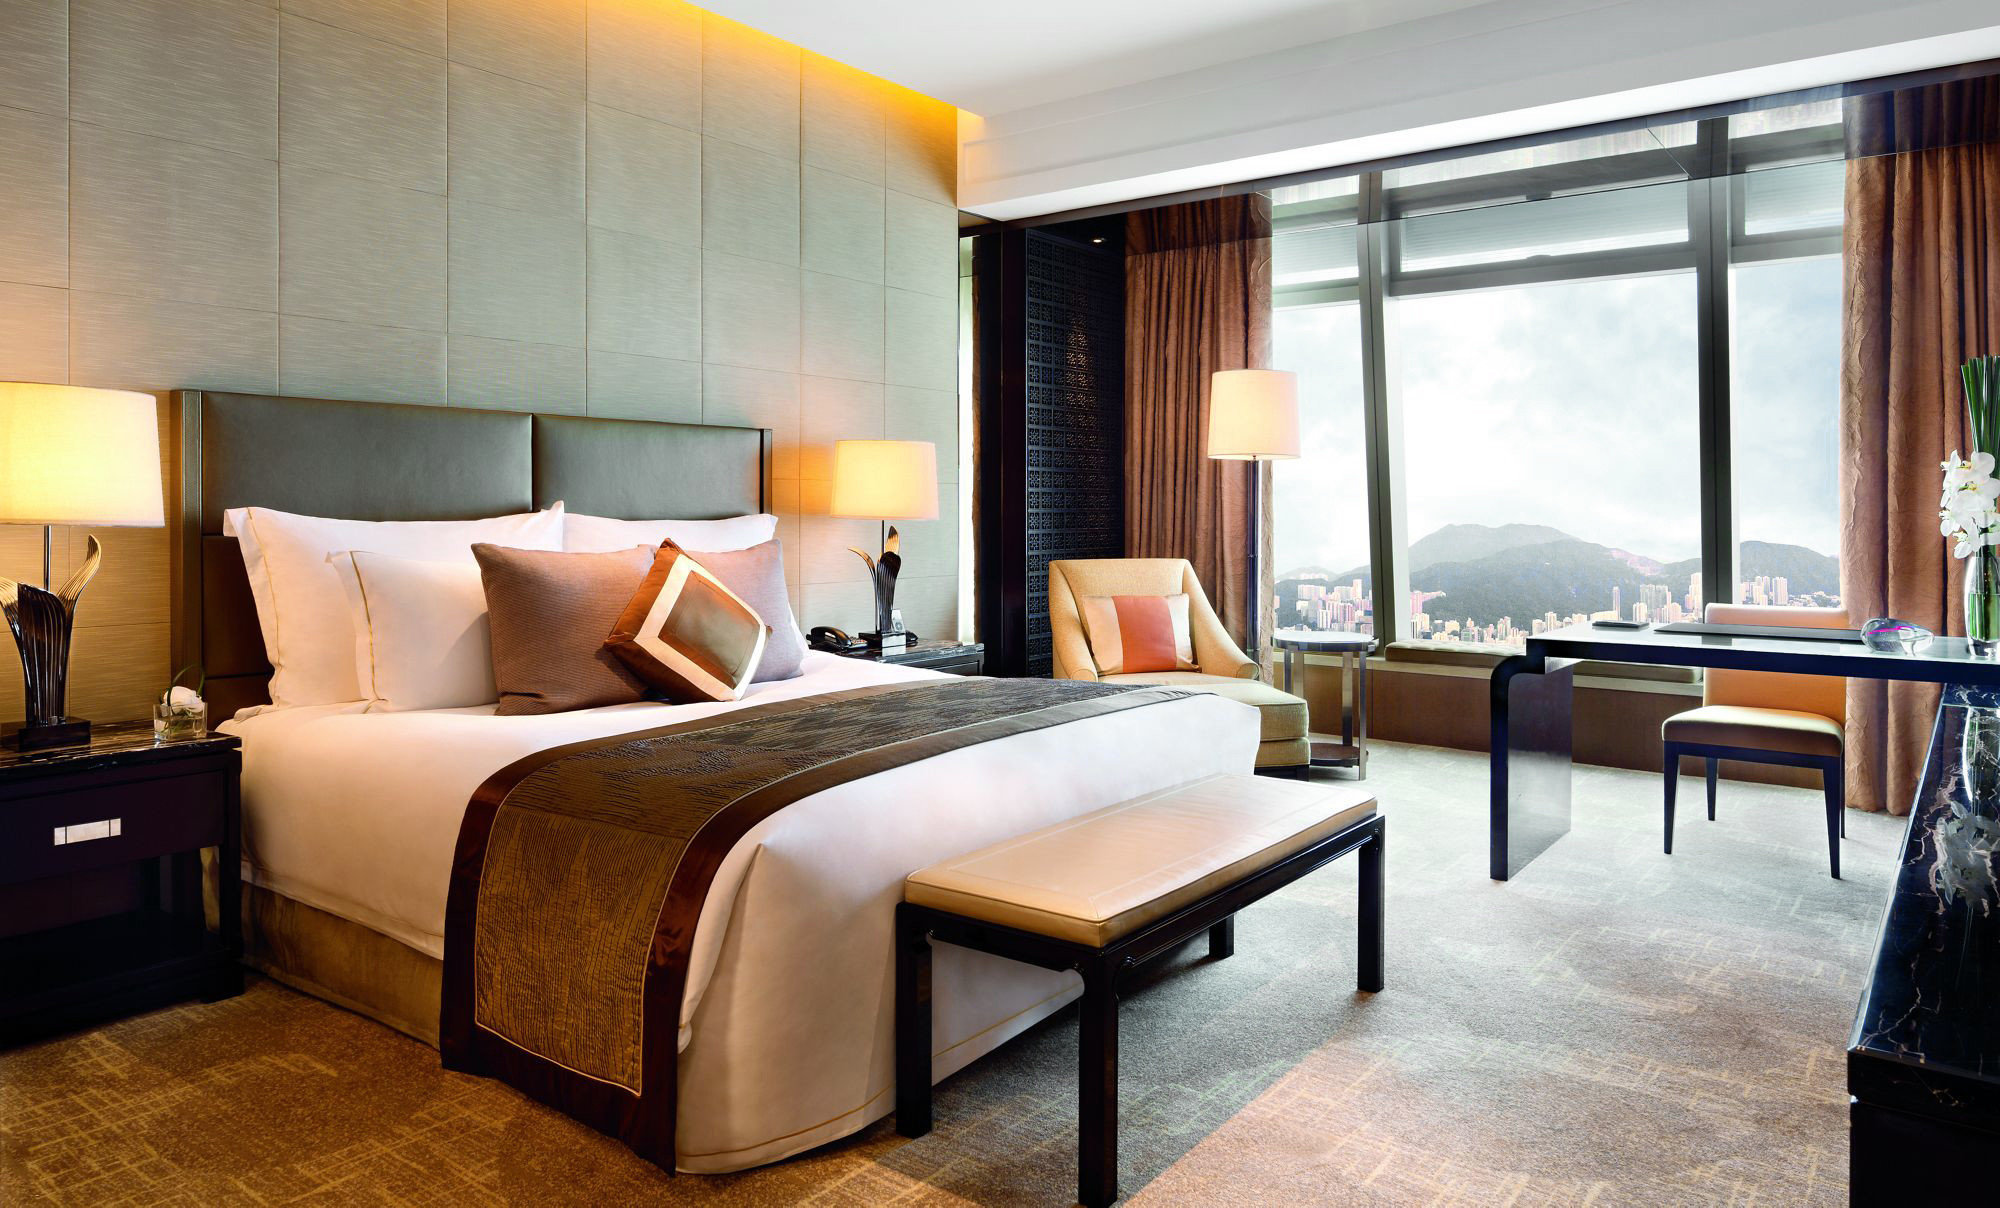 Hotels floor indoor wall room bed ceiling hotel property Bedroom window Suite condominium interior design estate real estate living room furniture Design Villa apartment